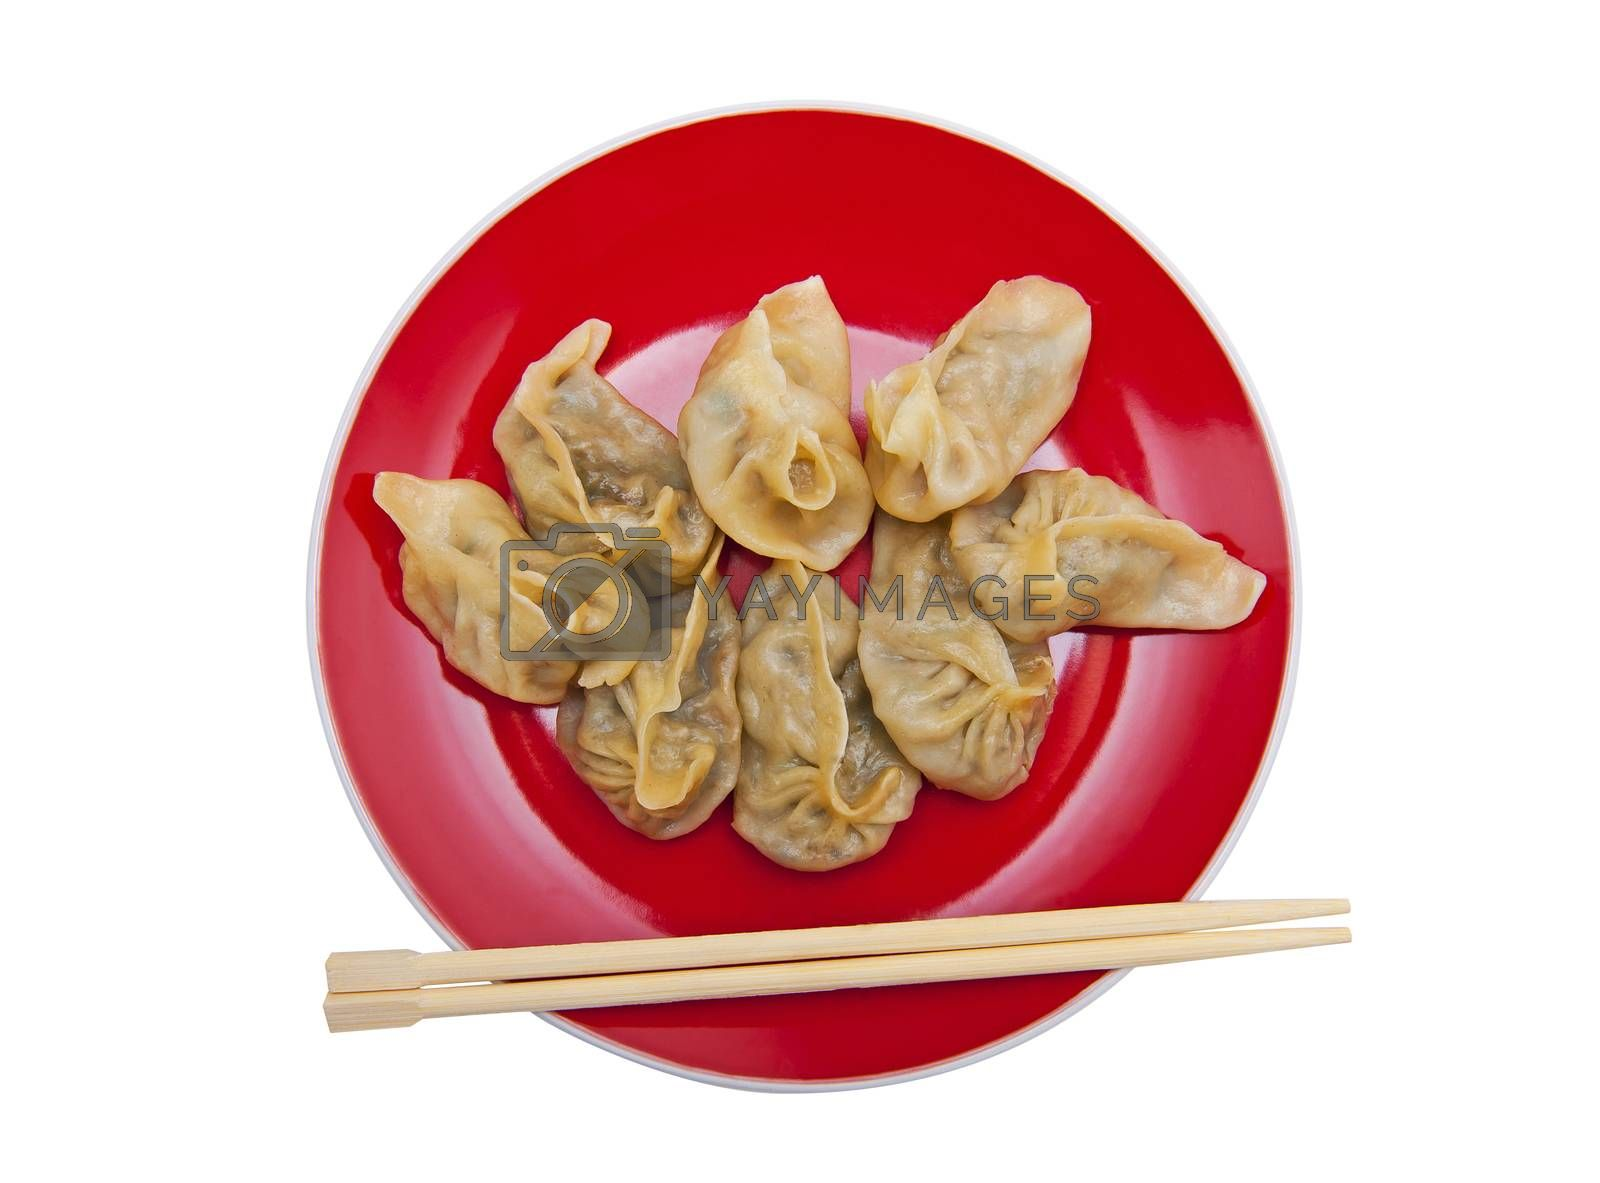 Dumplings on the red plate isolated on the white background